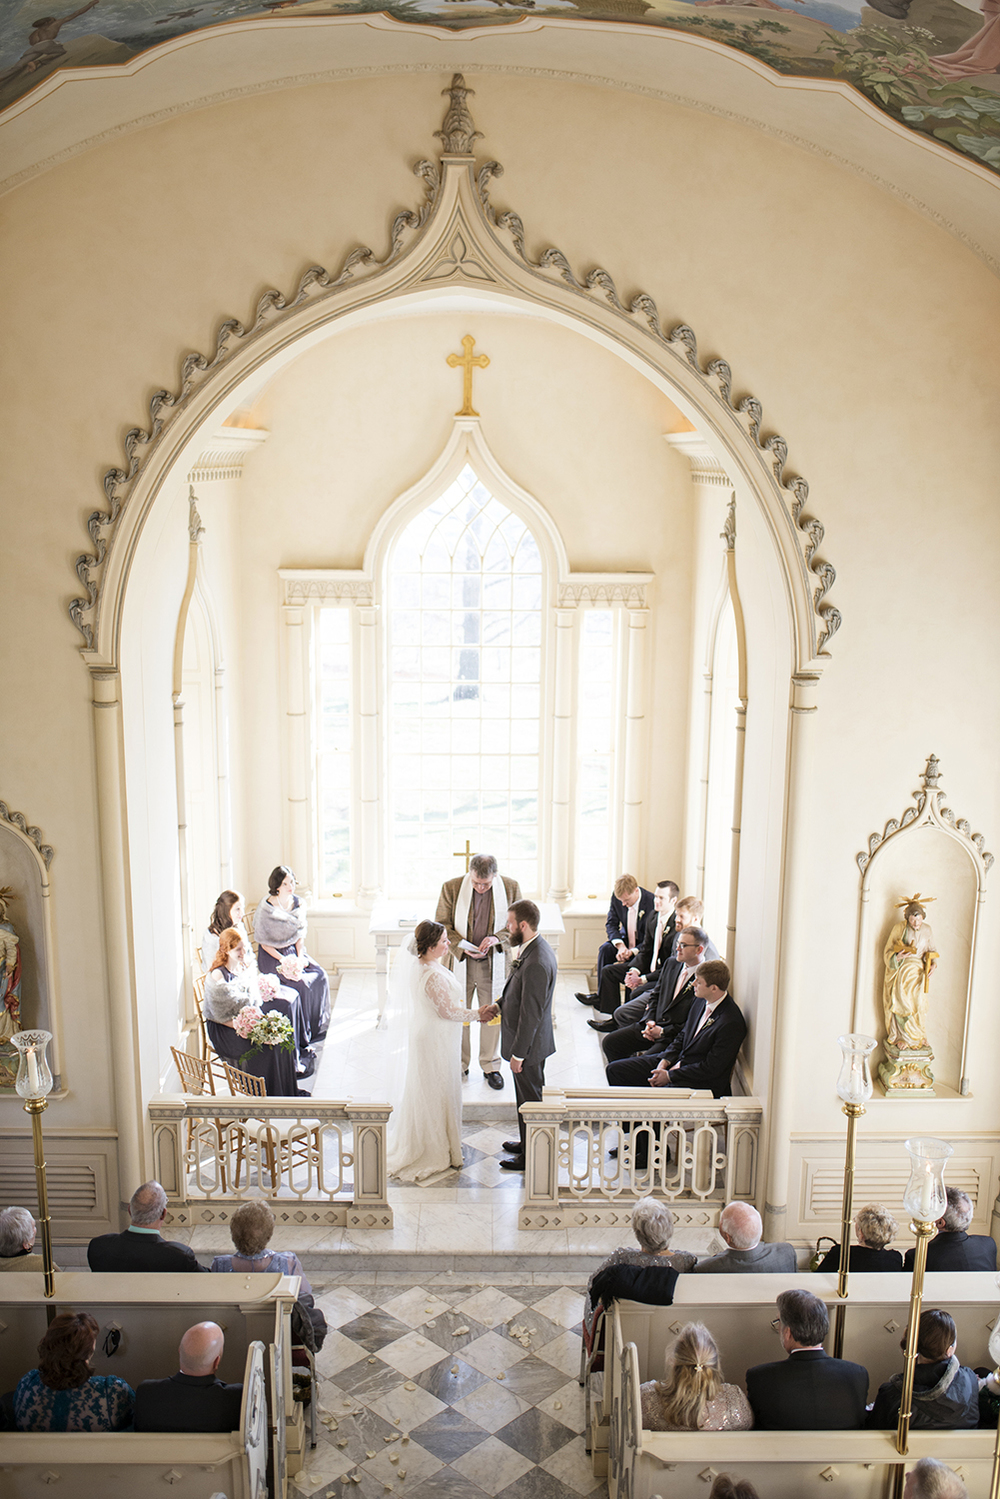 The Wedding Timeline: The Ceremony | Business